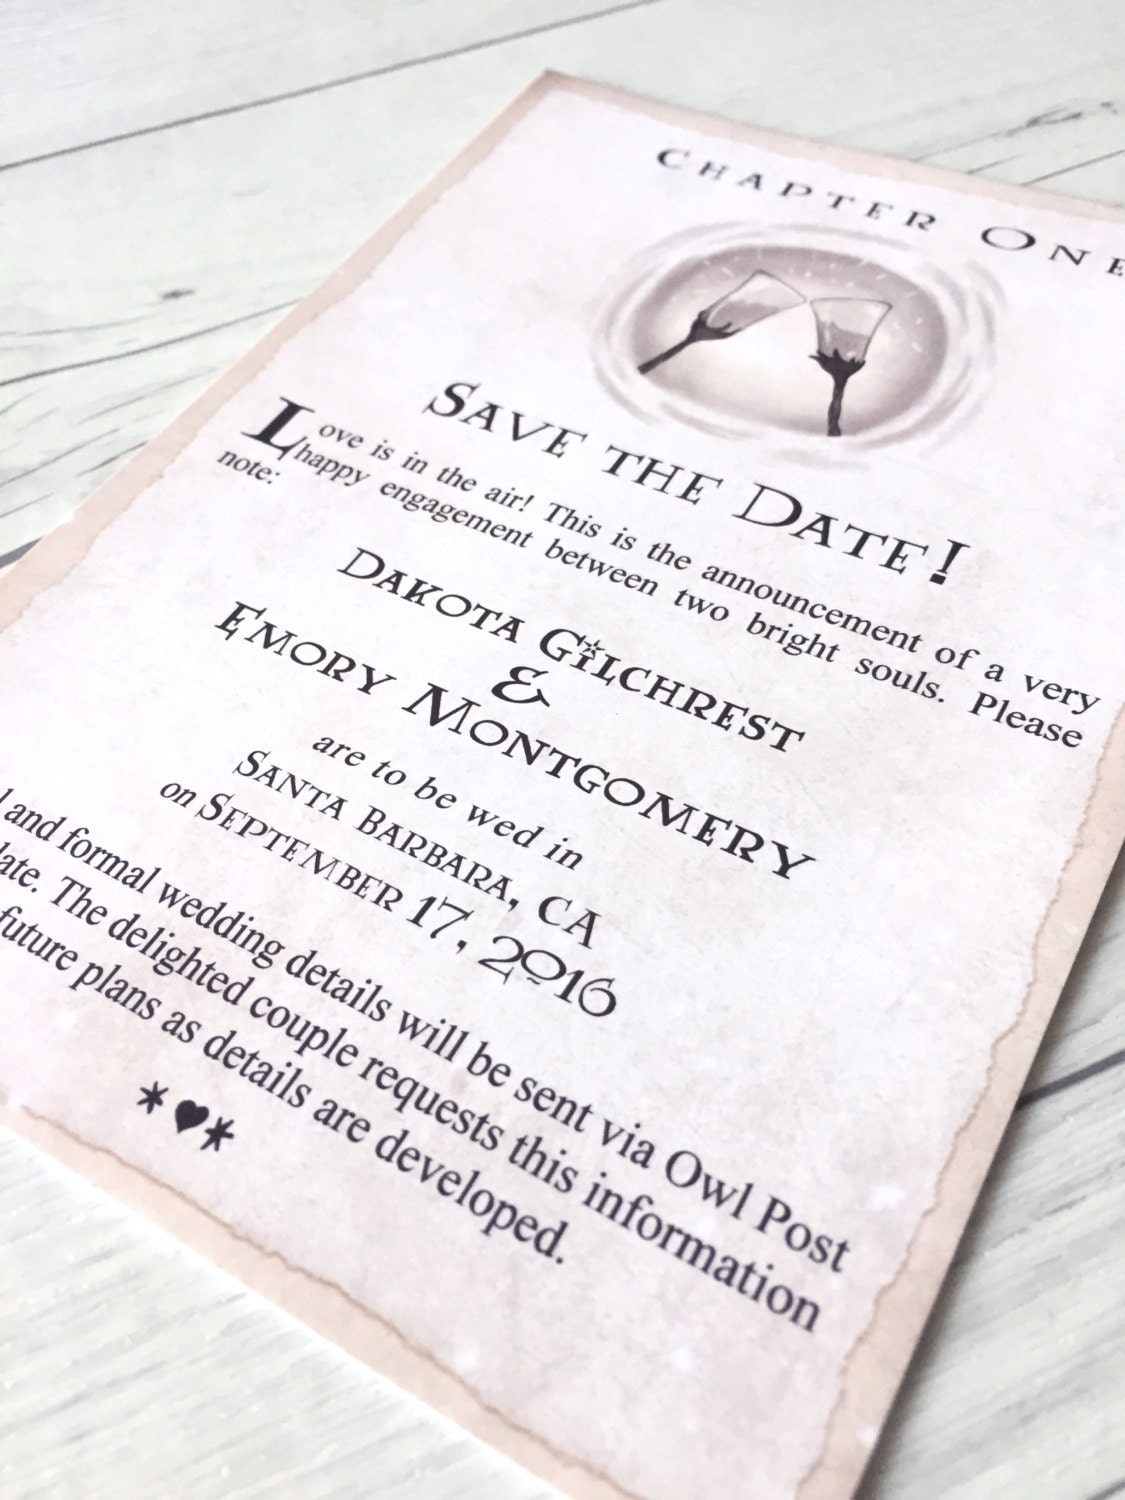 Harry Potter Book Dates : Harry potter save the date book chapter by